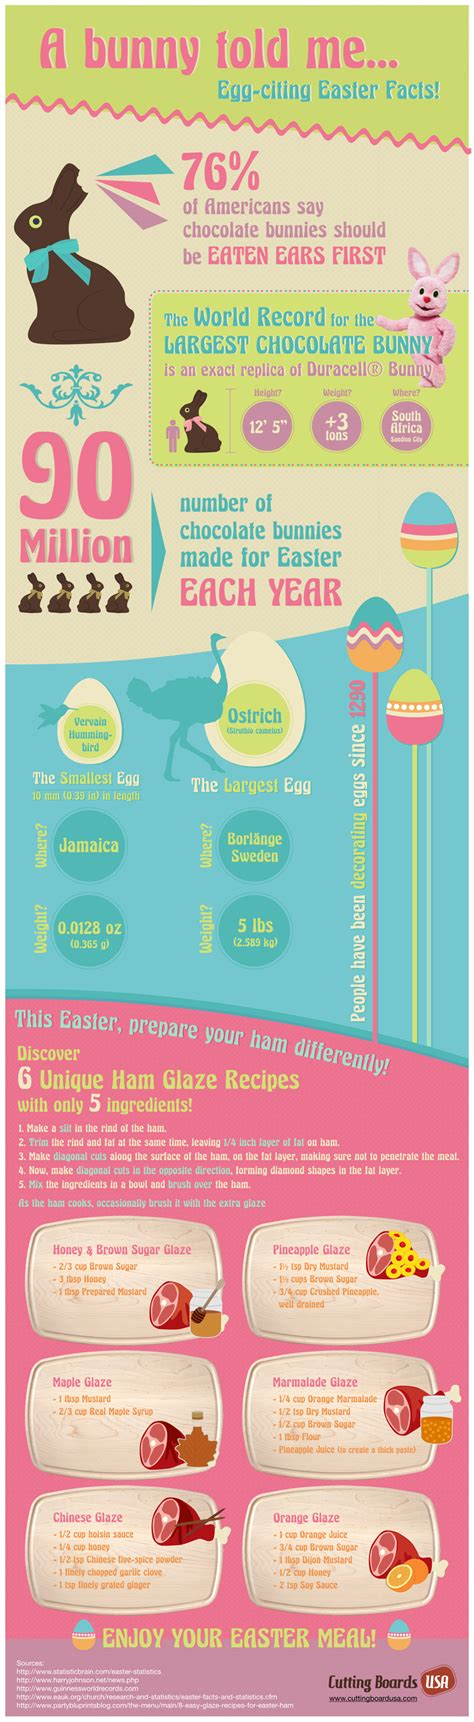 easter facts fun easter facts tasty ham glaze recipes infographic